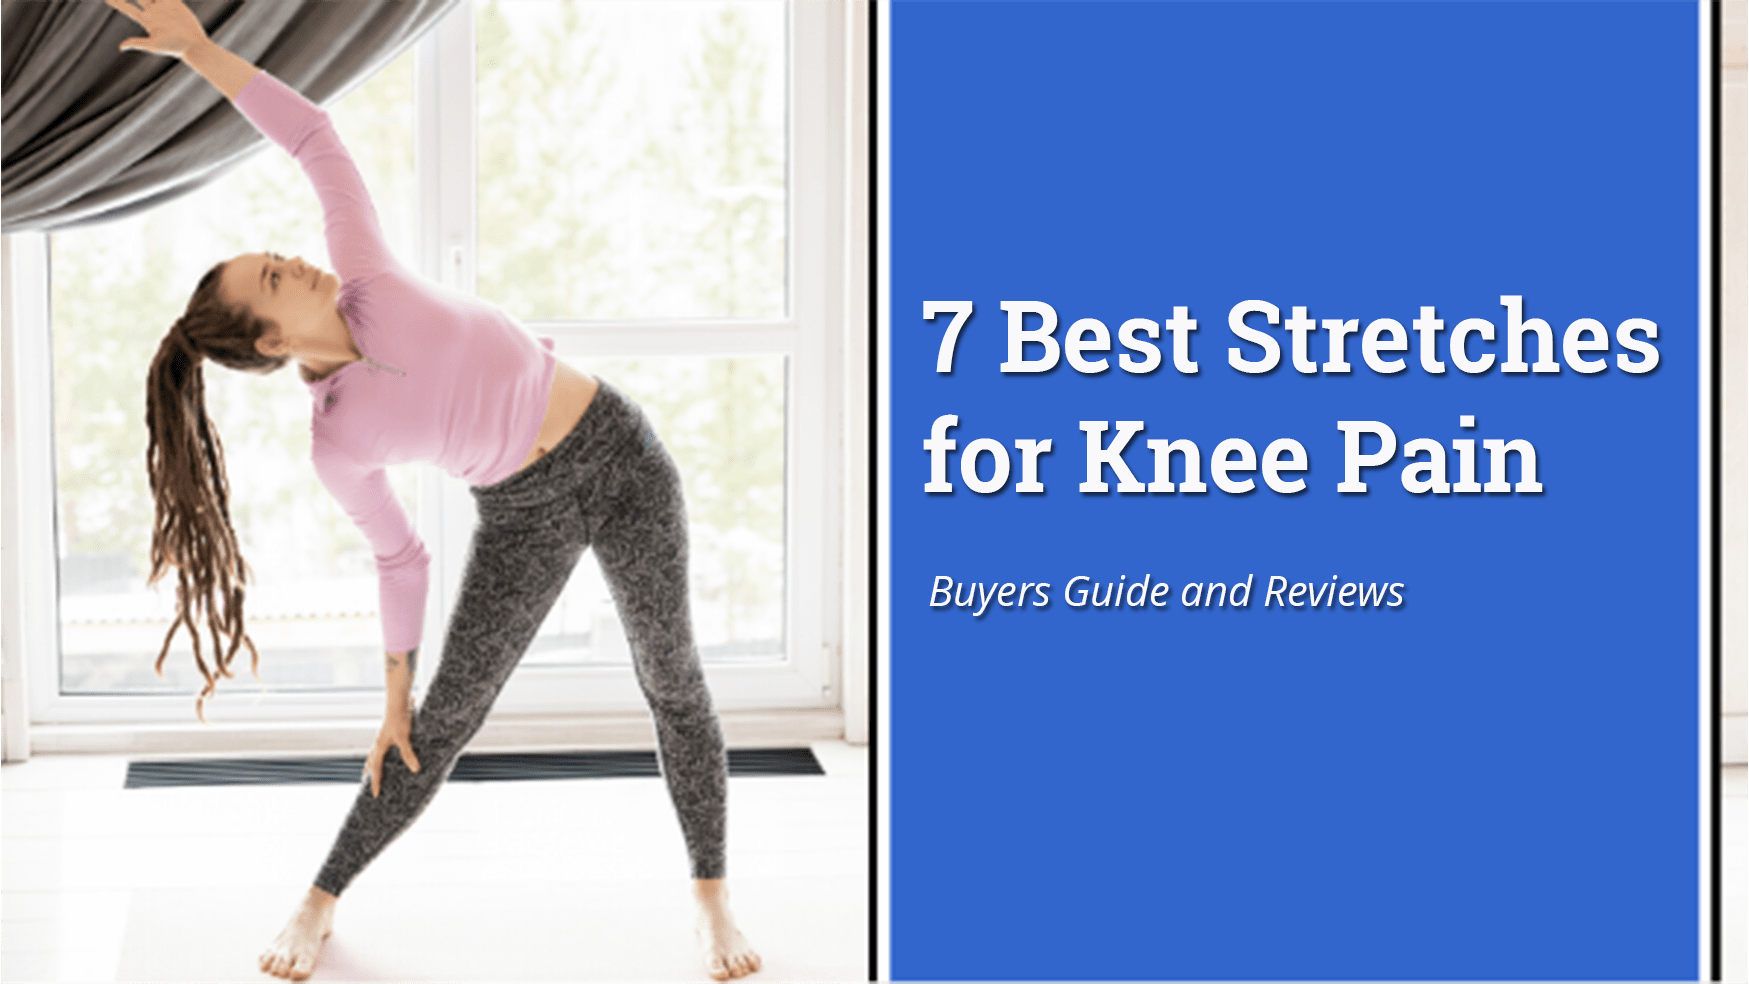 7 Best Stretches for Knee Pain